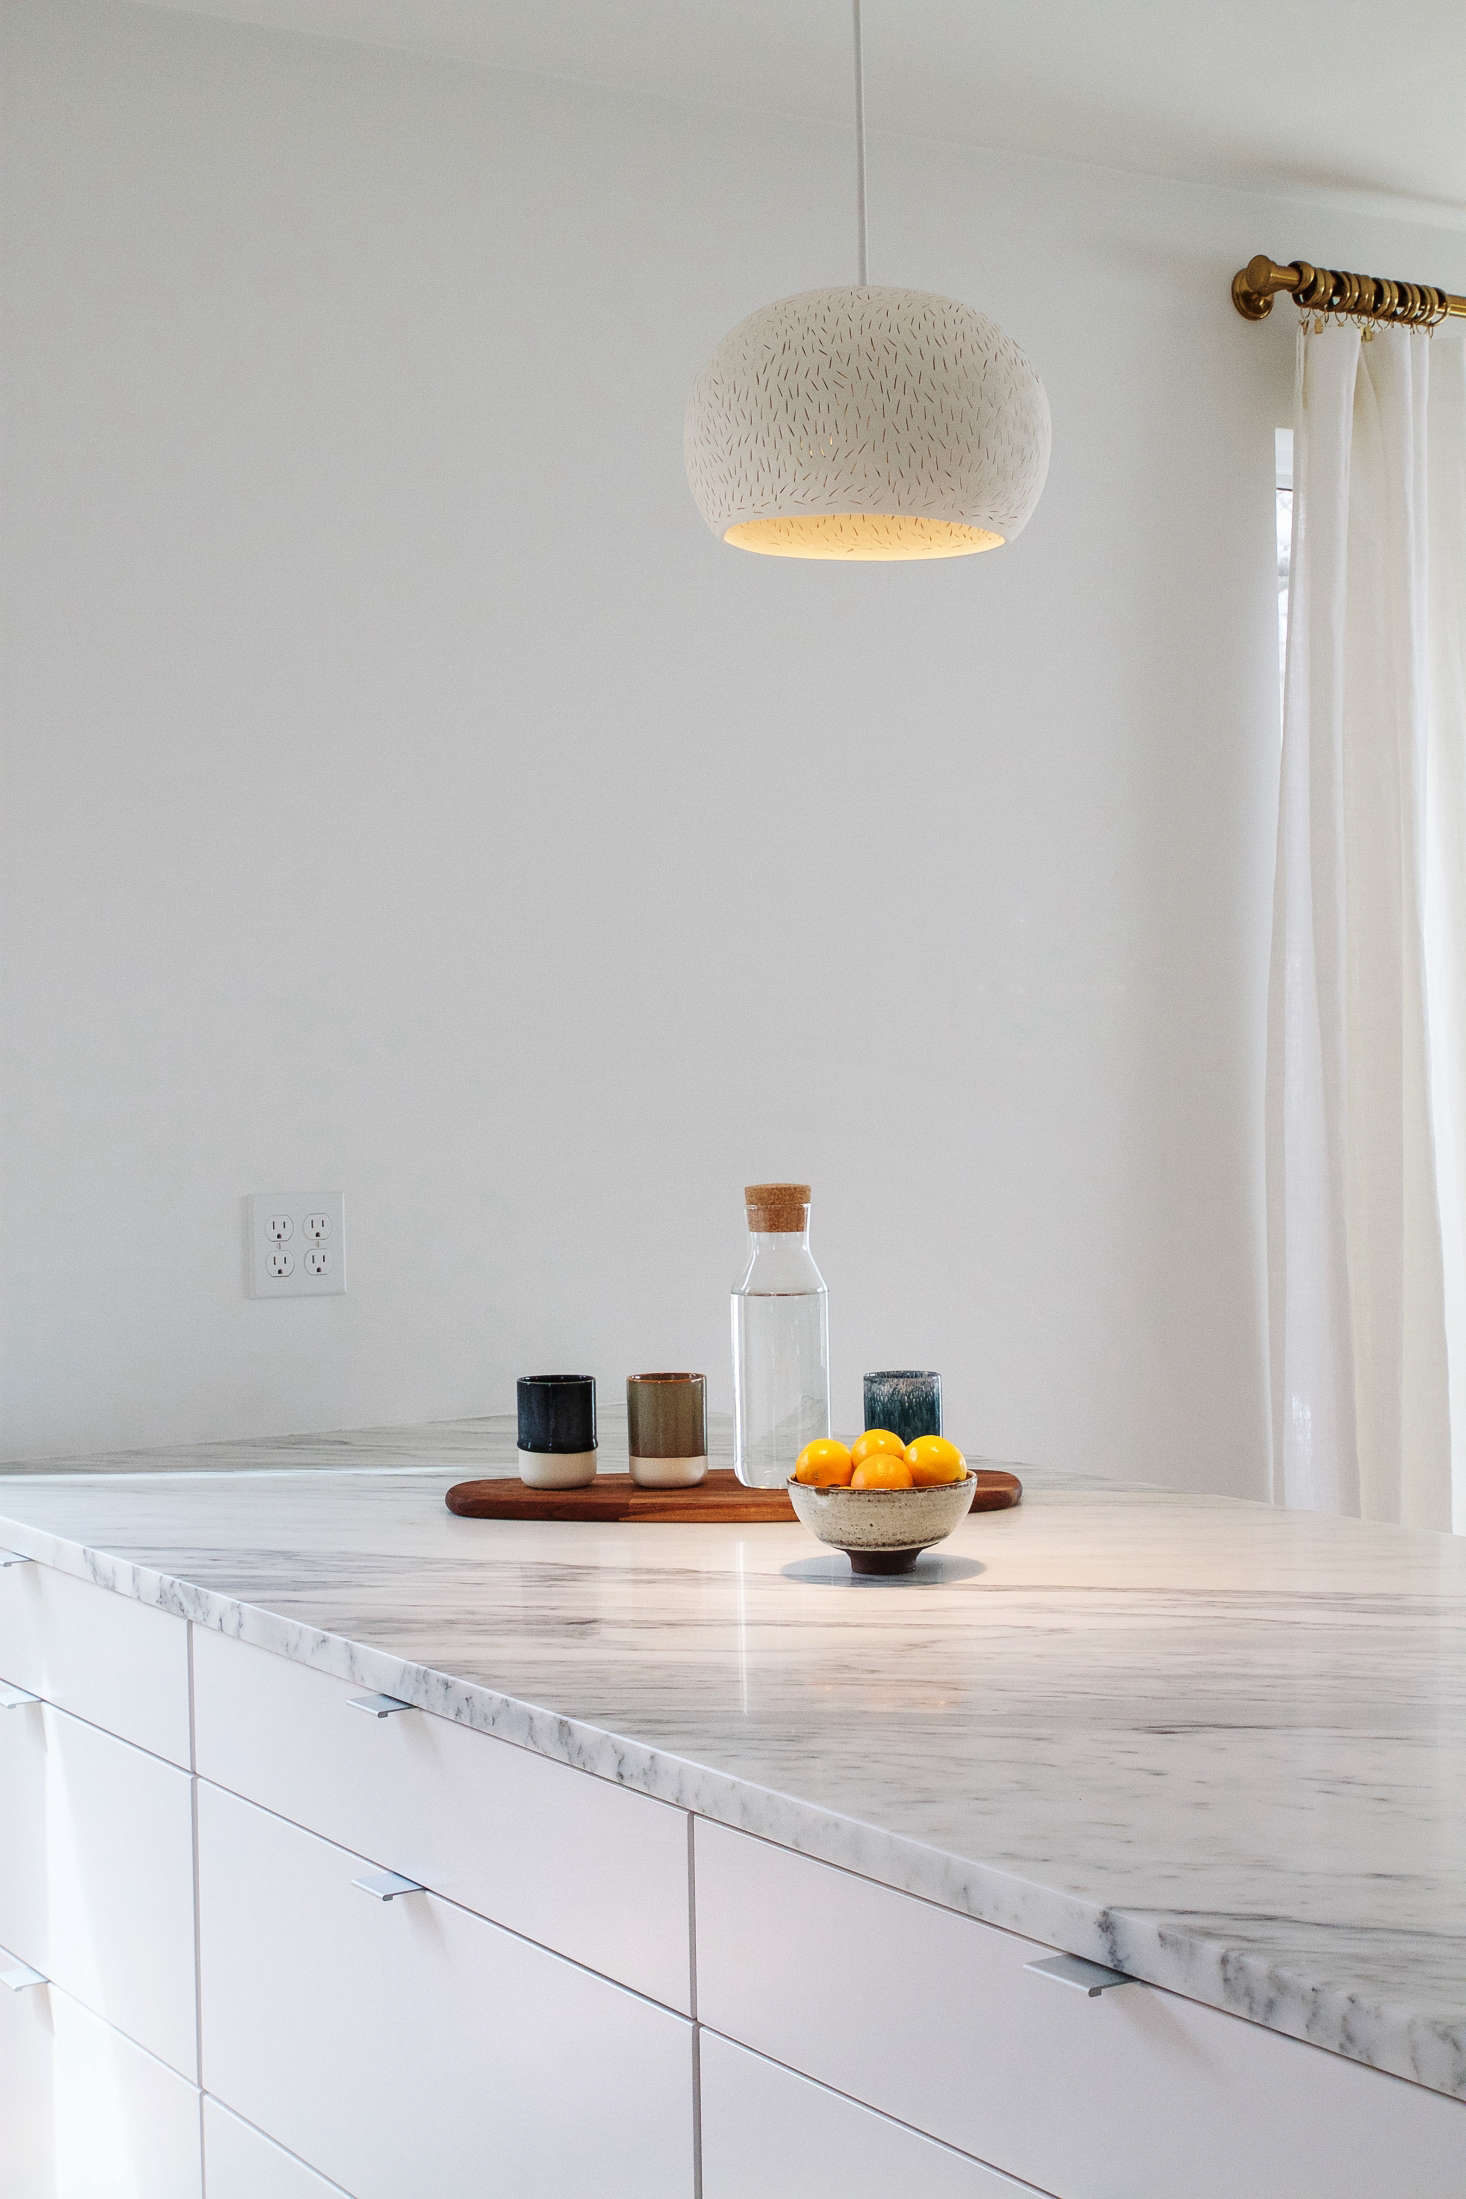 Creating a kitchen to fit their tastes and budget involved a mix of high/low, such as the IkeaVeddingecabinets topped withArabescato Marble Countertops.